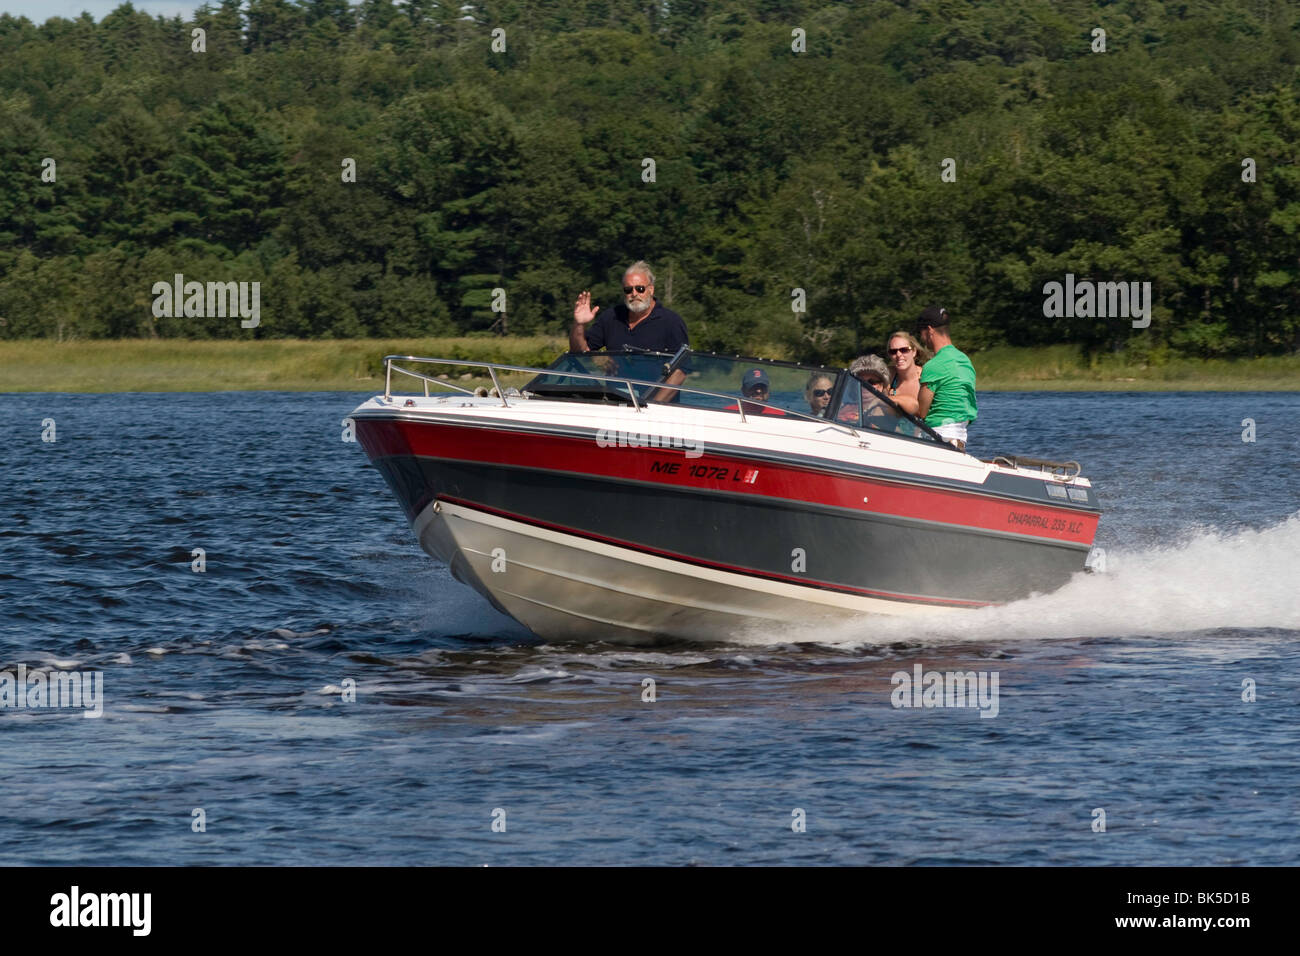 A speedy motorboat, friendly boaters, and a fine day for boating on the Sasanoa River, Maine - Stock Image